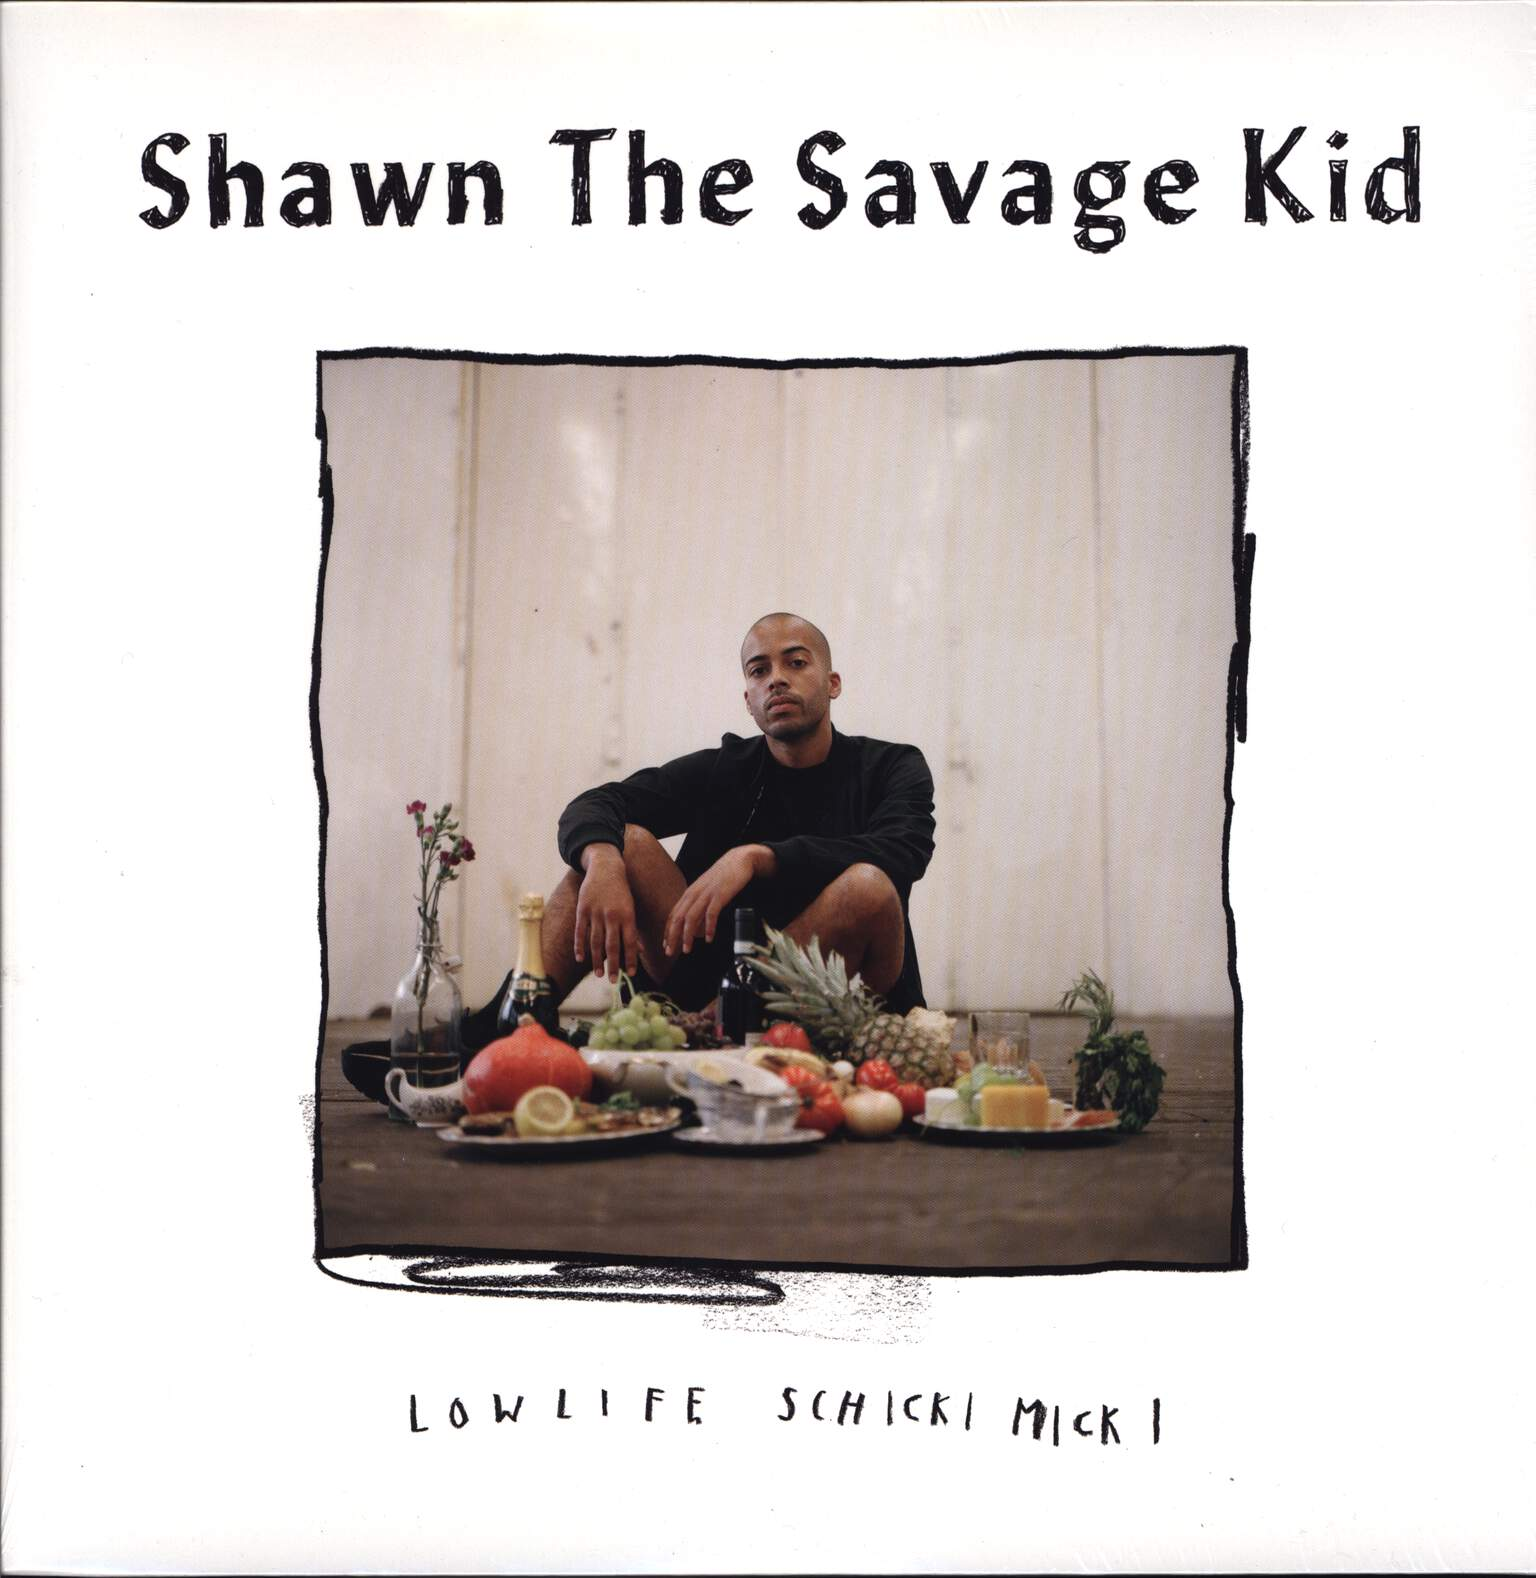 Shawn The Savage Kid: Lowlife Schickimicki, LP (Vinyl)